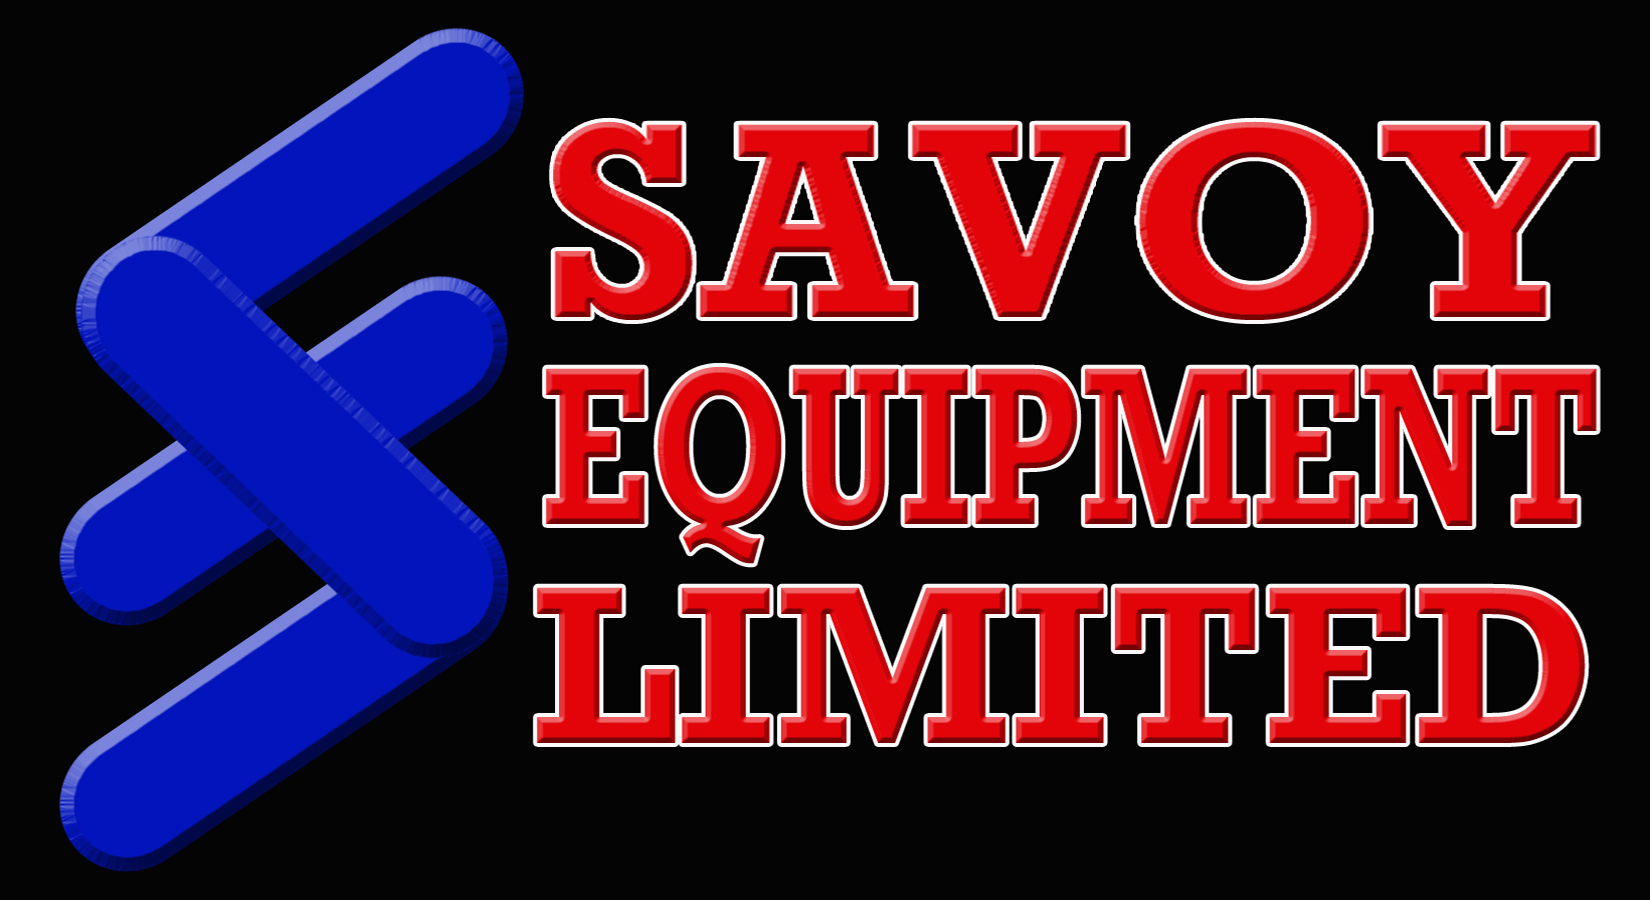 Logo Design by Kitz Malinao - Entry No. 93 in the Logo Design Contest Inspiring Logo Design for Savoy Equipment Ltd..